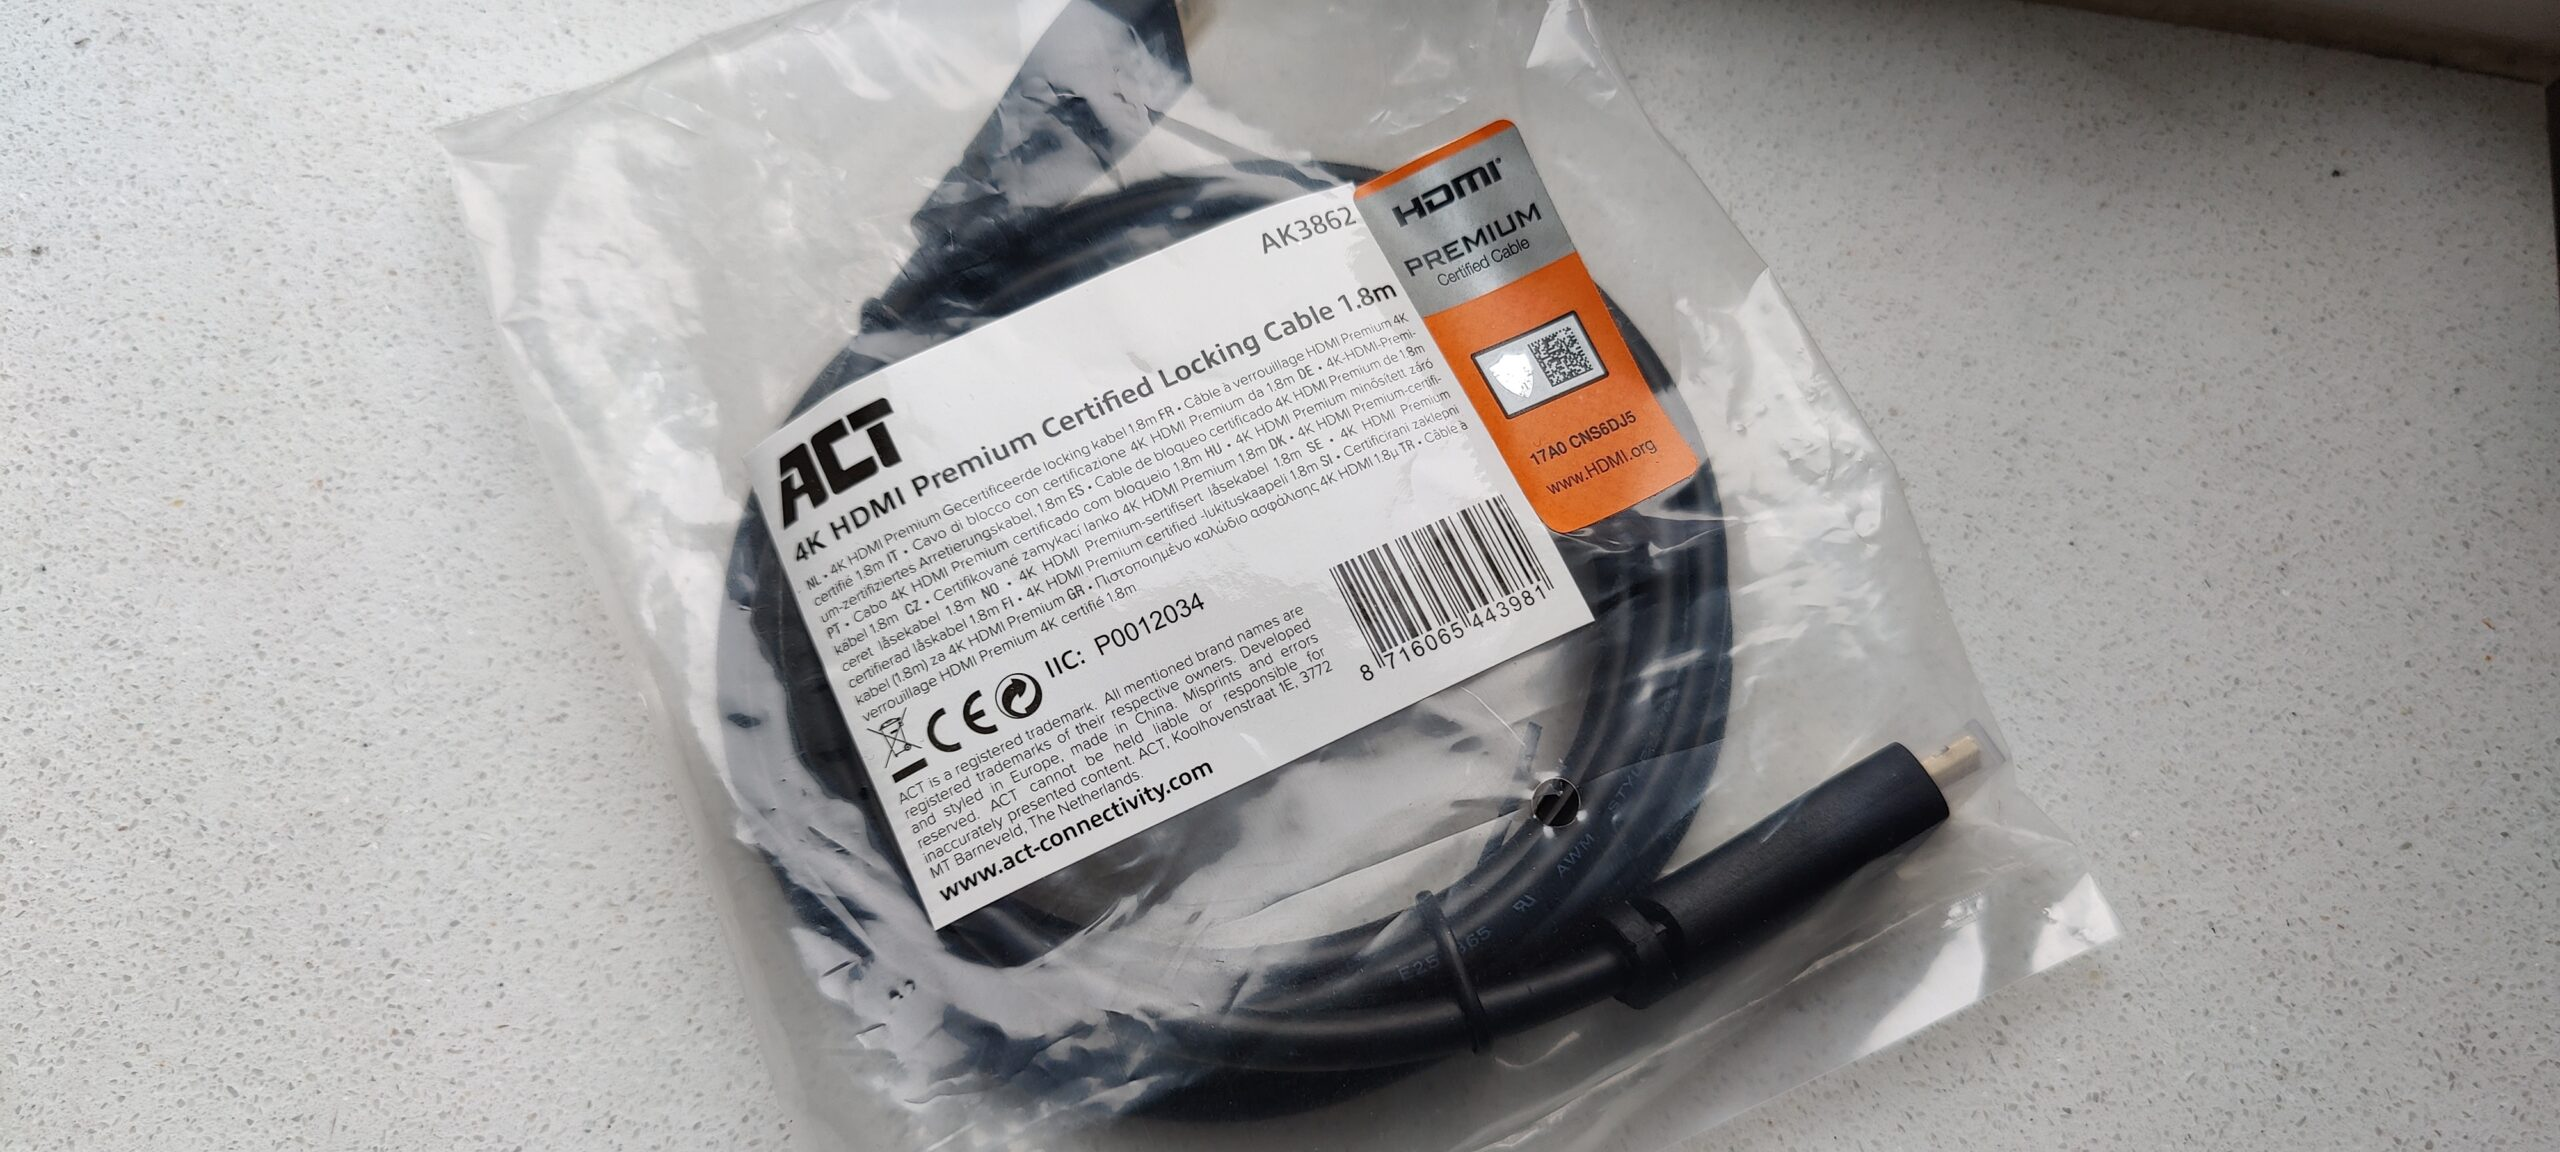 ACT HDMI Premium Certified Cable